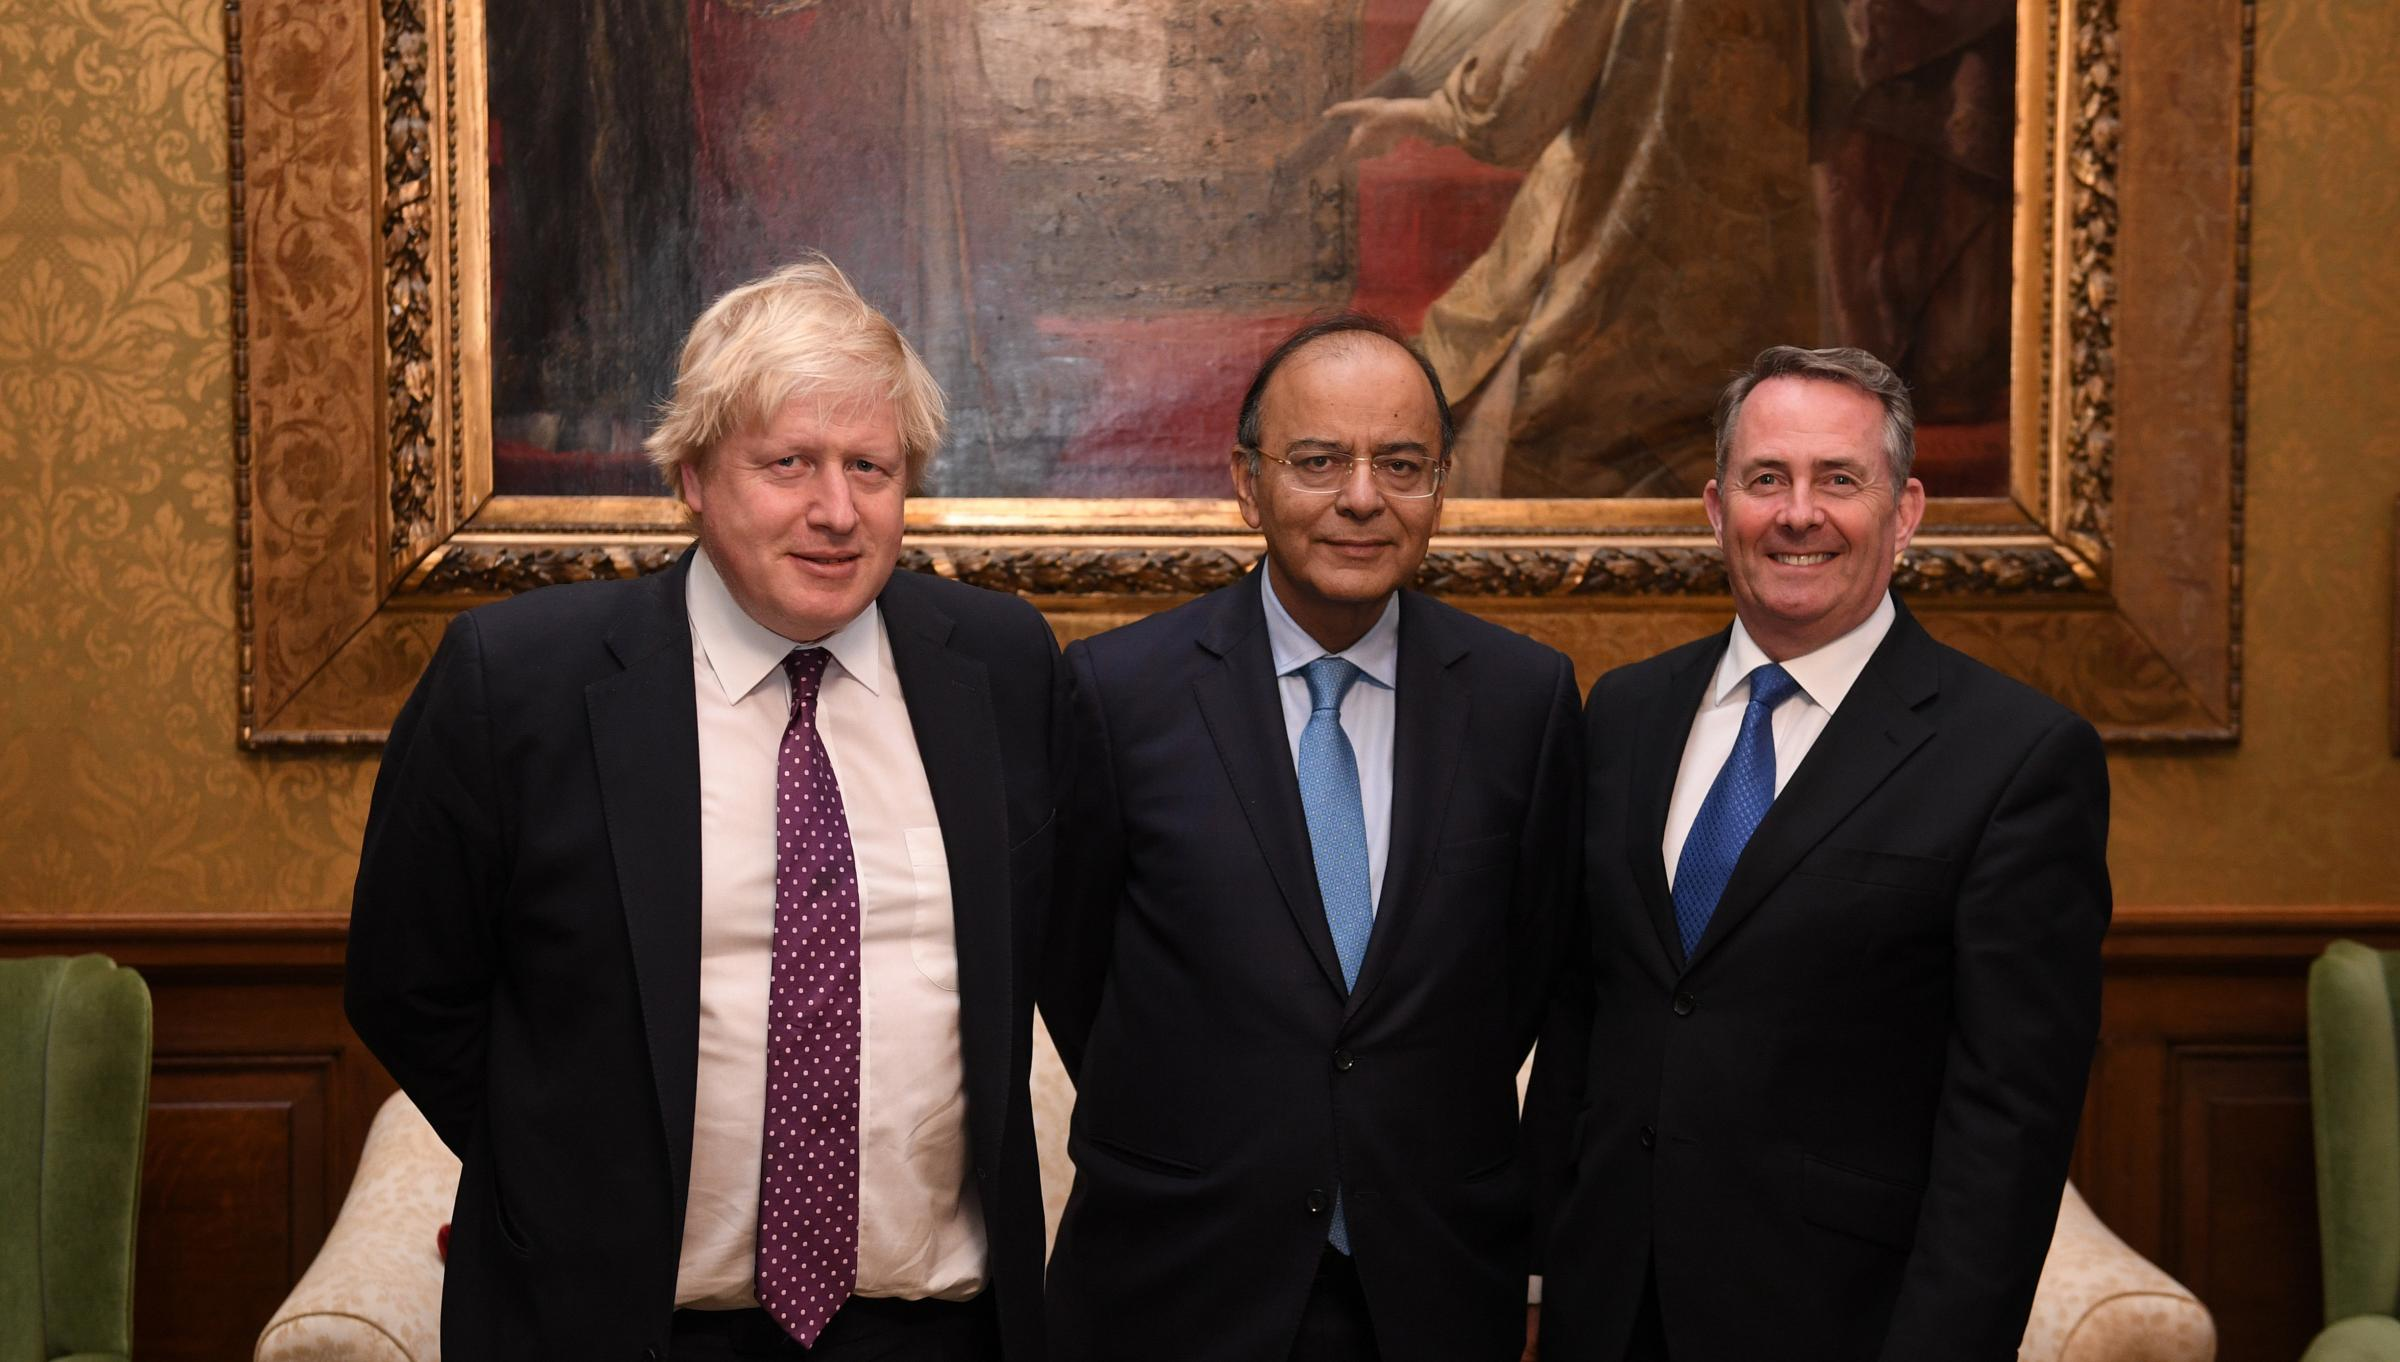 The projection was submitted by the finance minister Arun Jaitley, centre, pictured with Boris Johnson and Liam Fox. Photograph: Getty